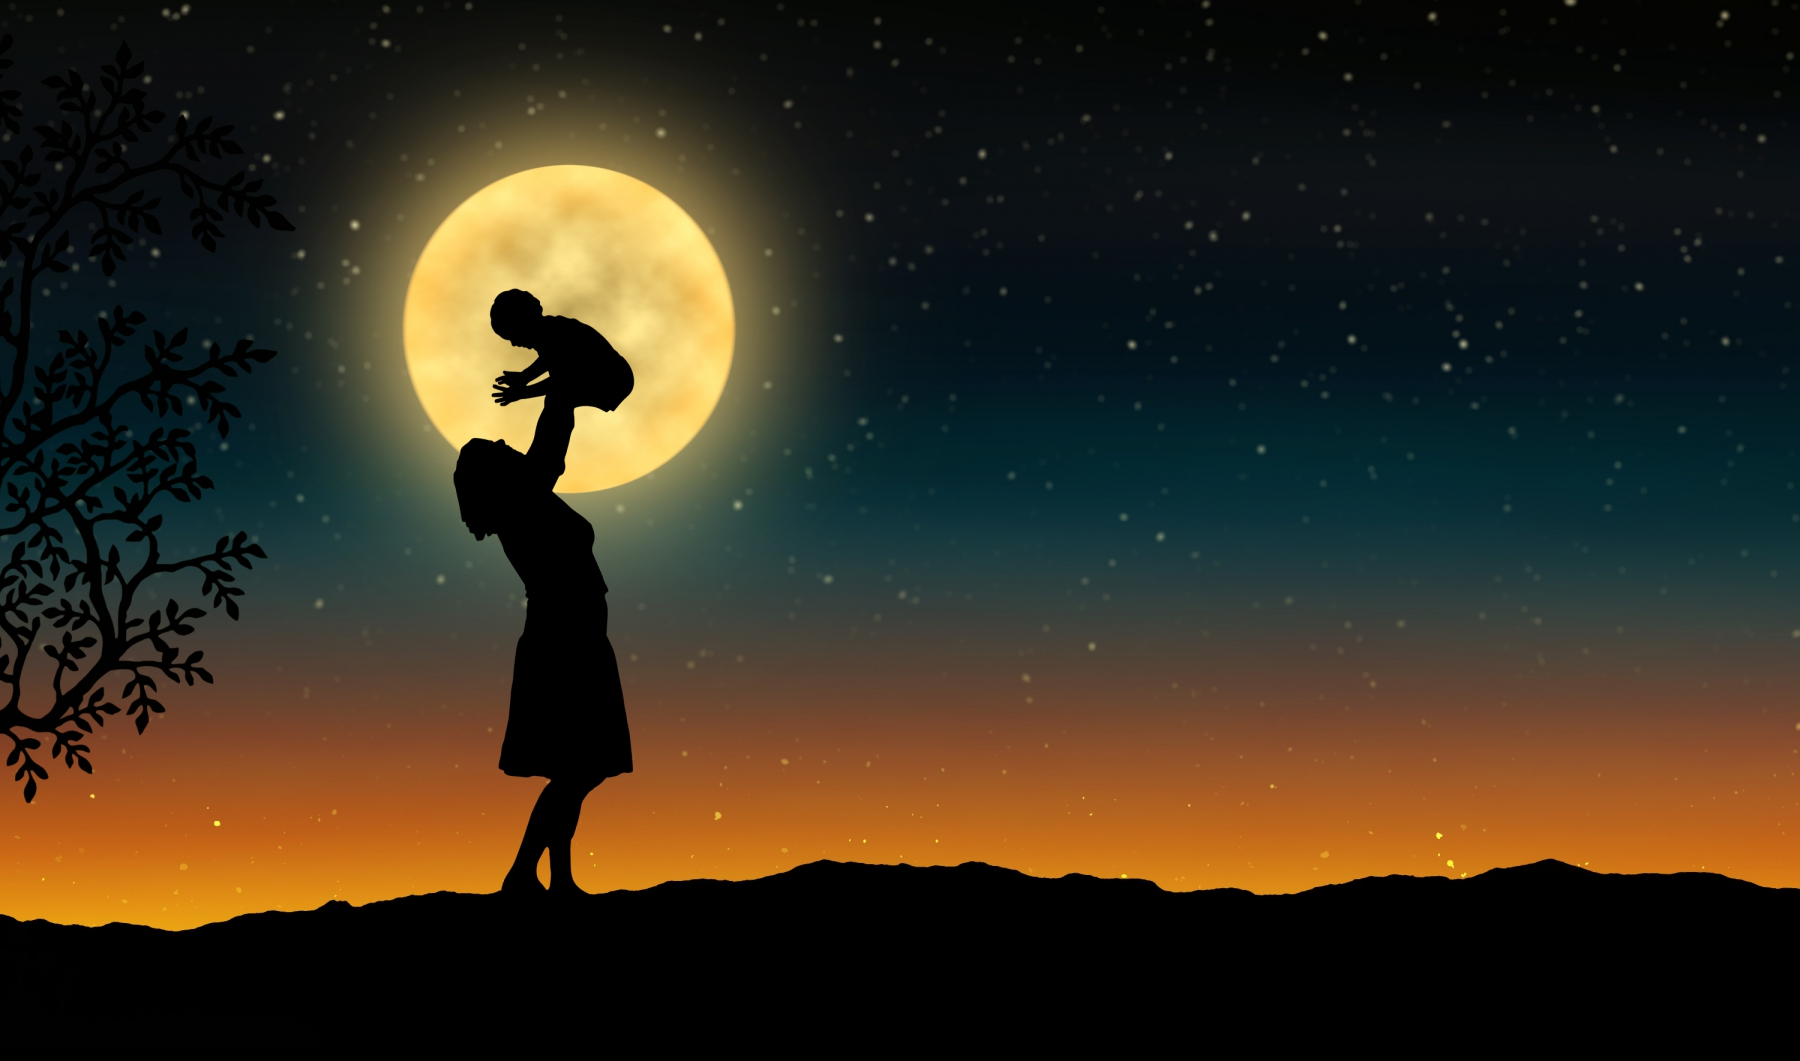 mother with her baby - silhouette